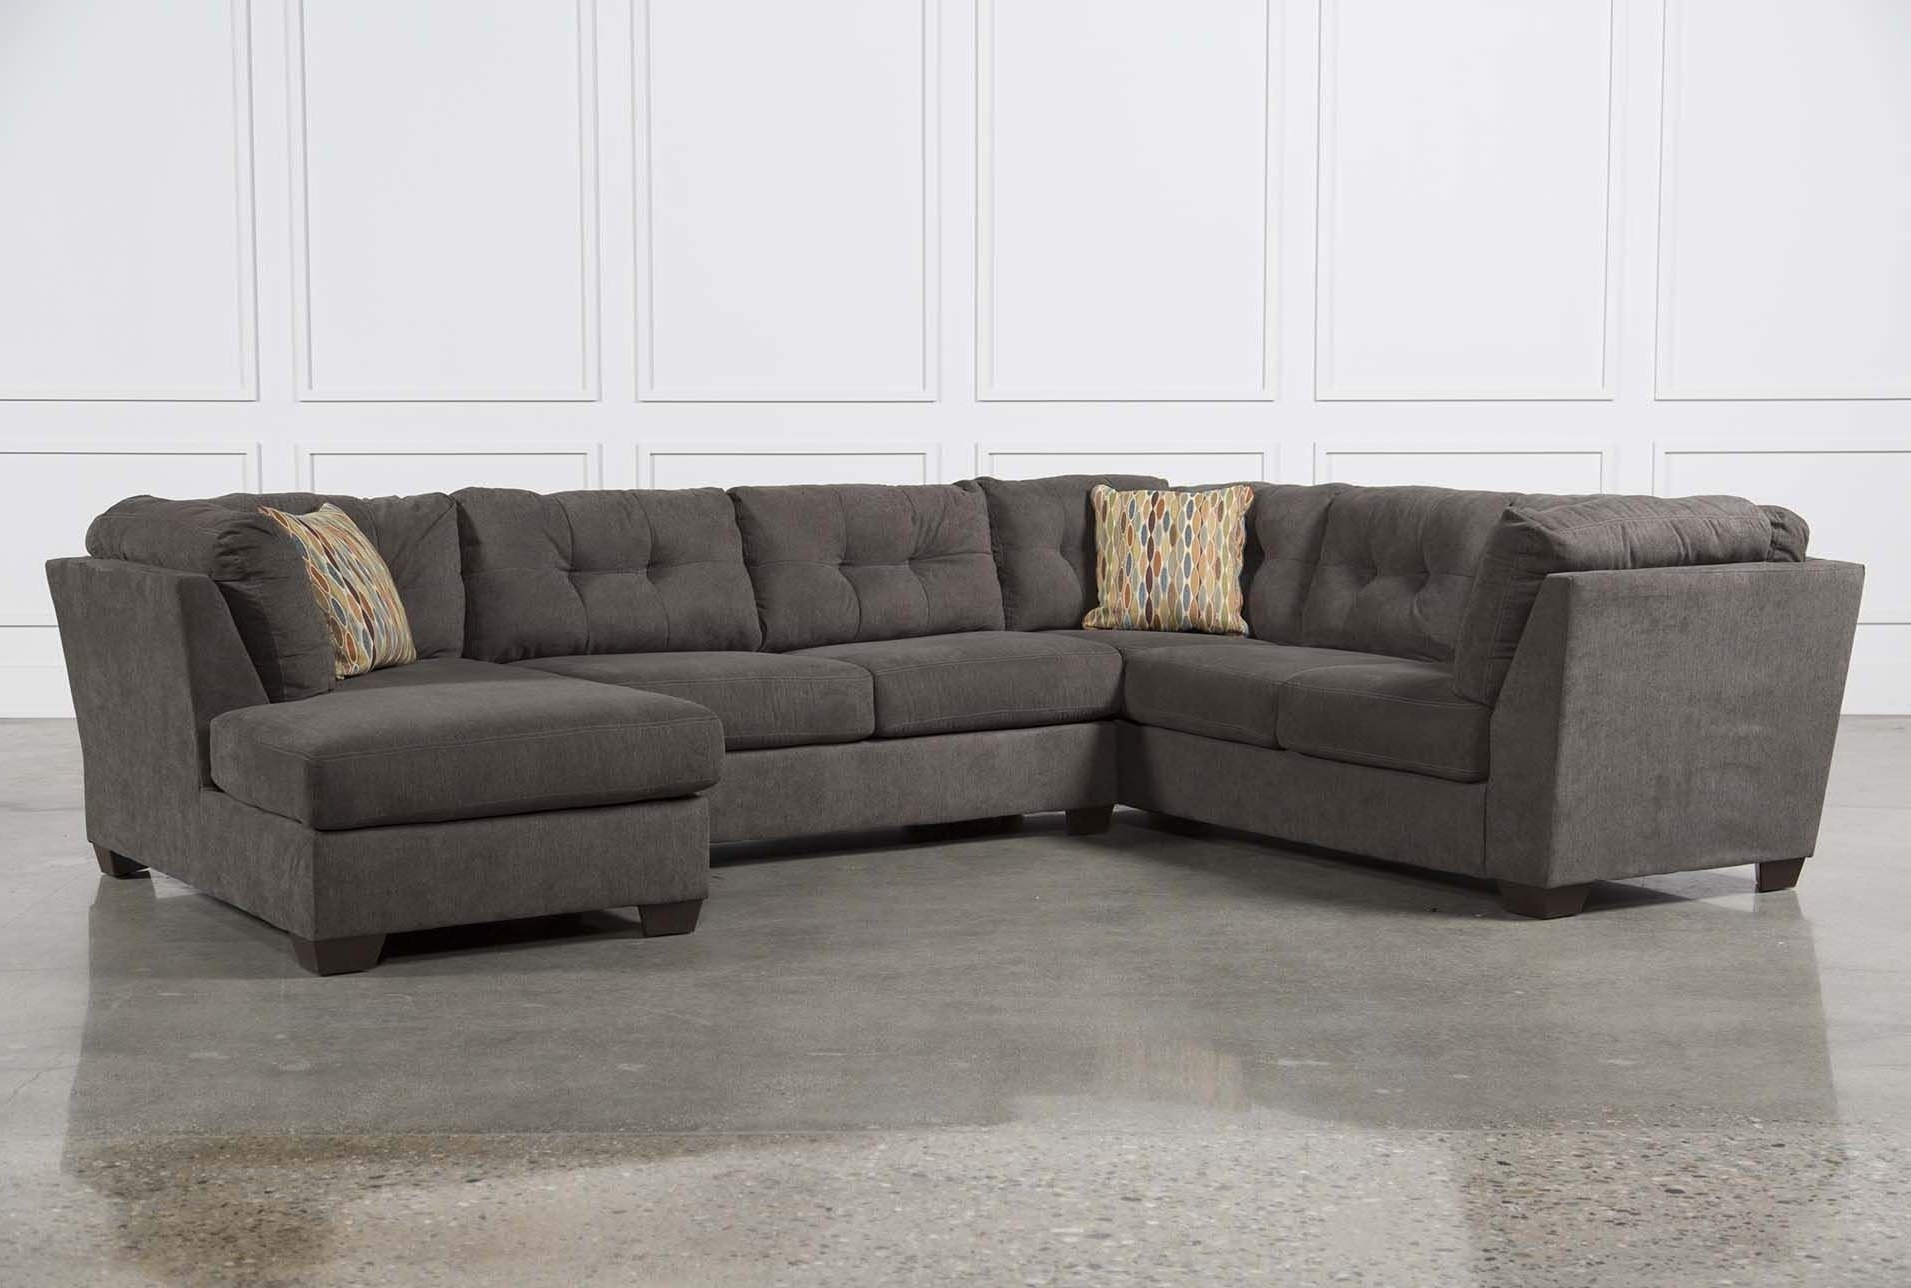 Latest Grey Sectionals With Chaise With Regard To Furniture: Comfortable Deep Seat Sectional For Your Living Room (View 11 of 15)